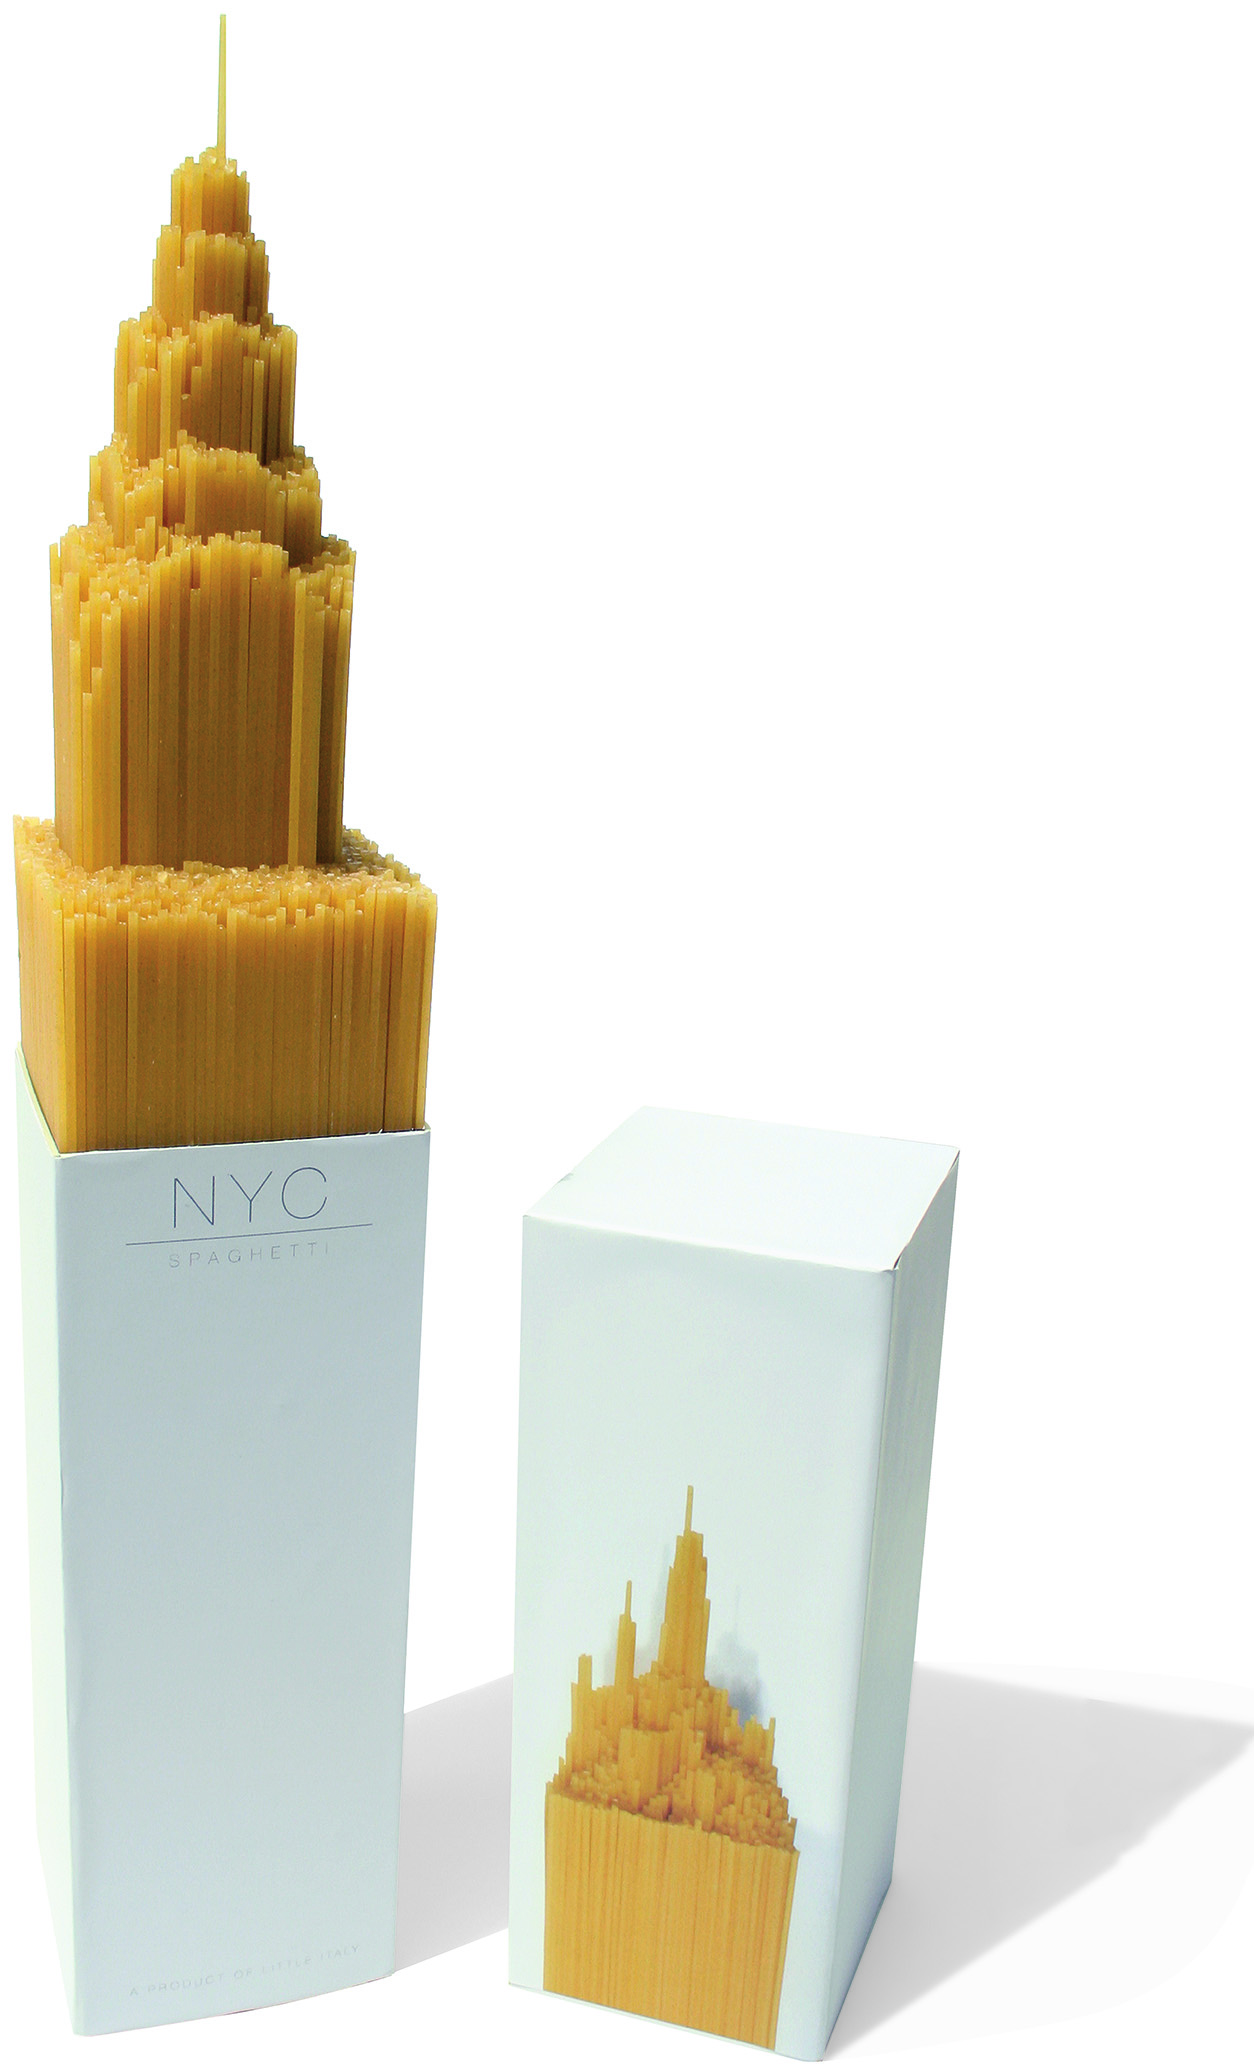 NYC Spaghetti: a mould at the base of the pack creates the spaghetti formation at the top. Alex Creamer, UK, 2000.  Designer Alex Creamer; 3D modeller Ben Thorpe; tutors Billy Harkcom, Andrew Bainbridge, Jon Harker